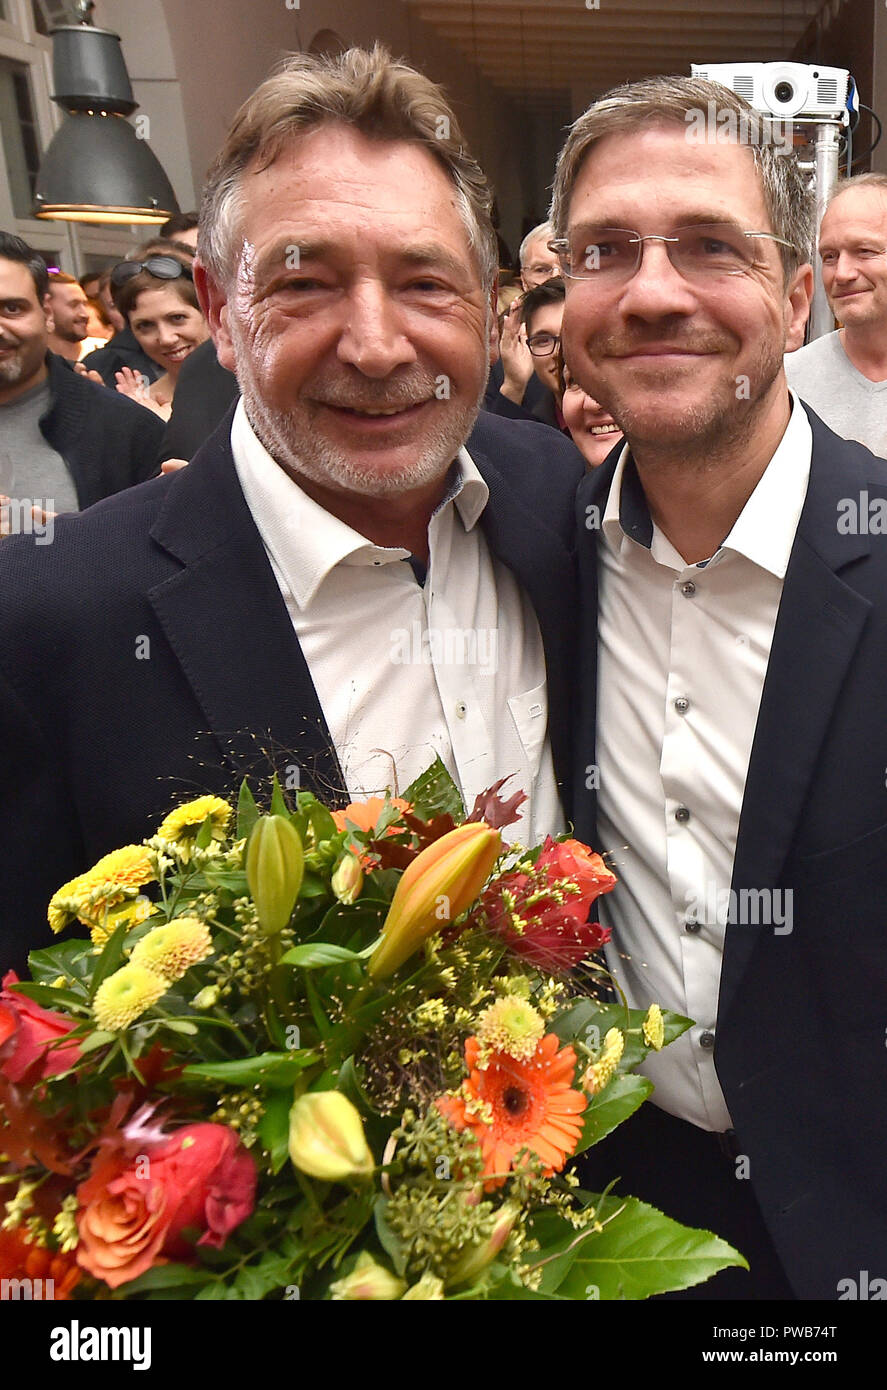 Potsdam, Brandenburg. 14th Oct, 2018. 14 October 2018, Germany, Potsdam: Jann Jakobs (SPD, L), Lord Mayor of Potsdam, congratulates Mike Schubert (SPD) on his victory at the election party. Schubert was elected new Lord Mayor with 55.3 percent of the votes. Credit: Bernd Settnik/dpa-Zen tralbild/dpa/Alamy Live News - Stock Image